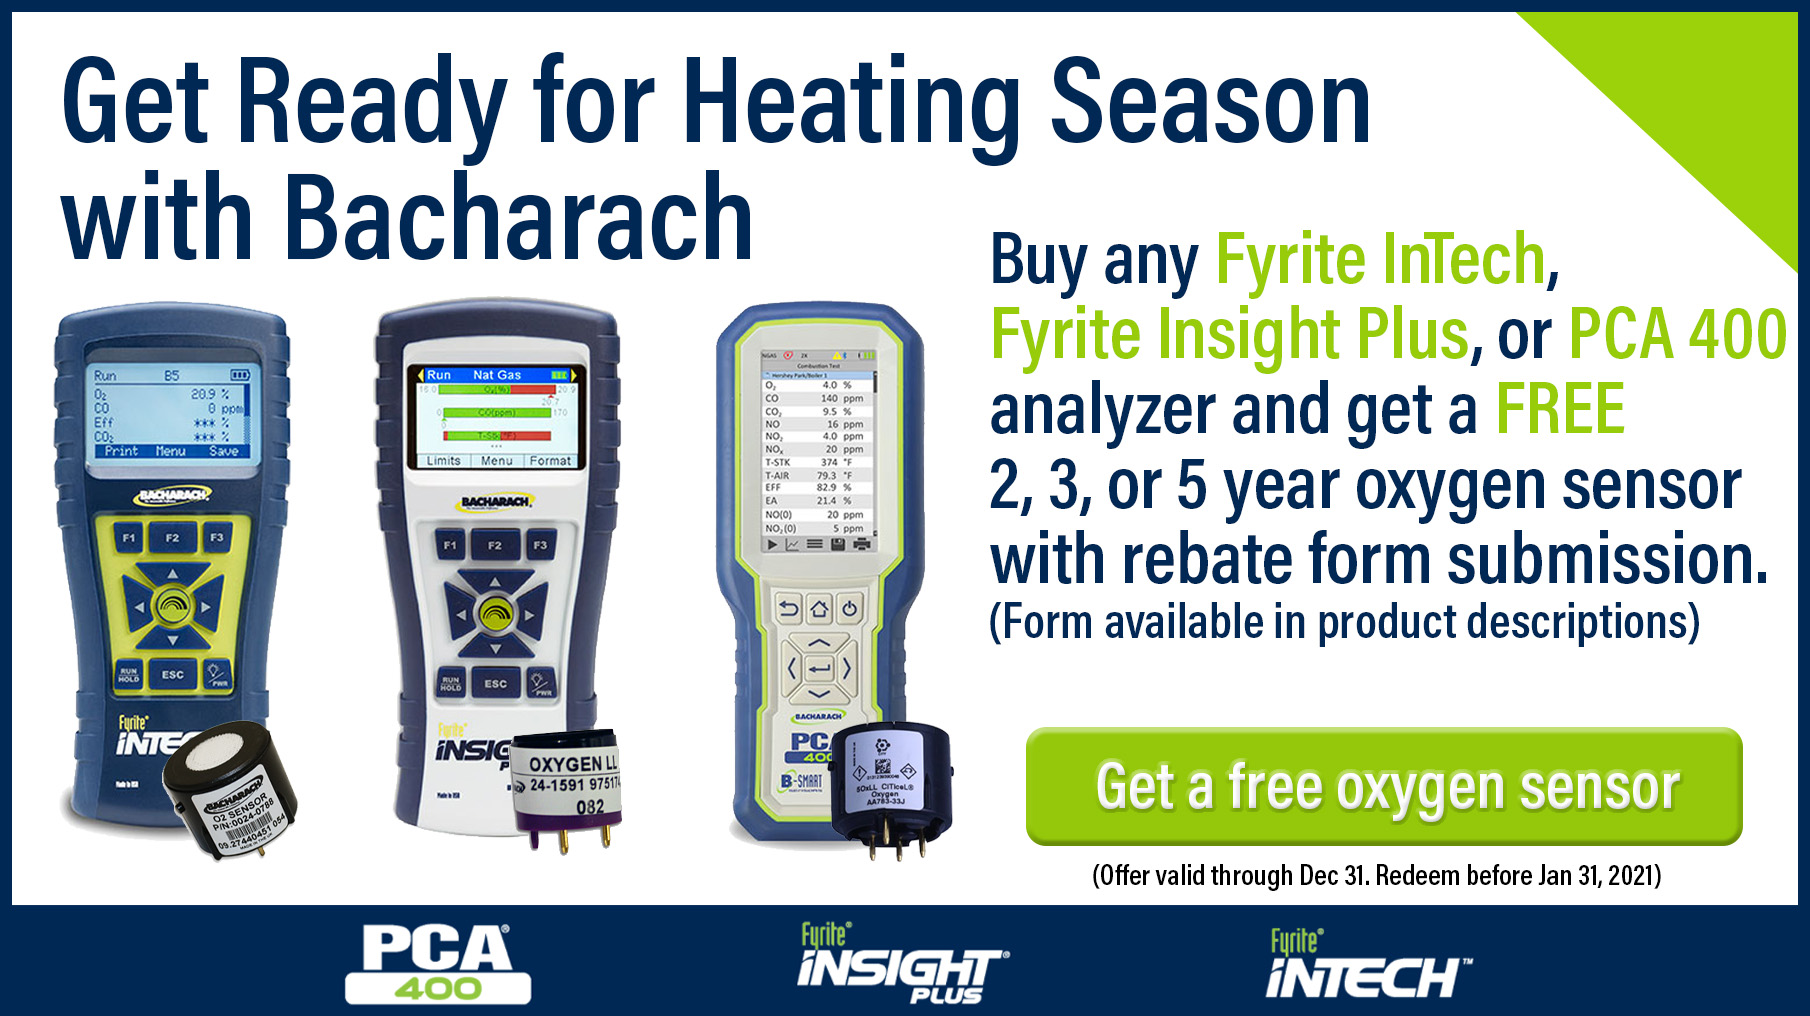 Bacharach Fall Promo